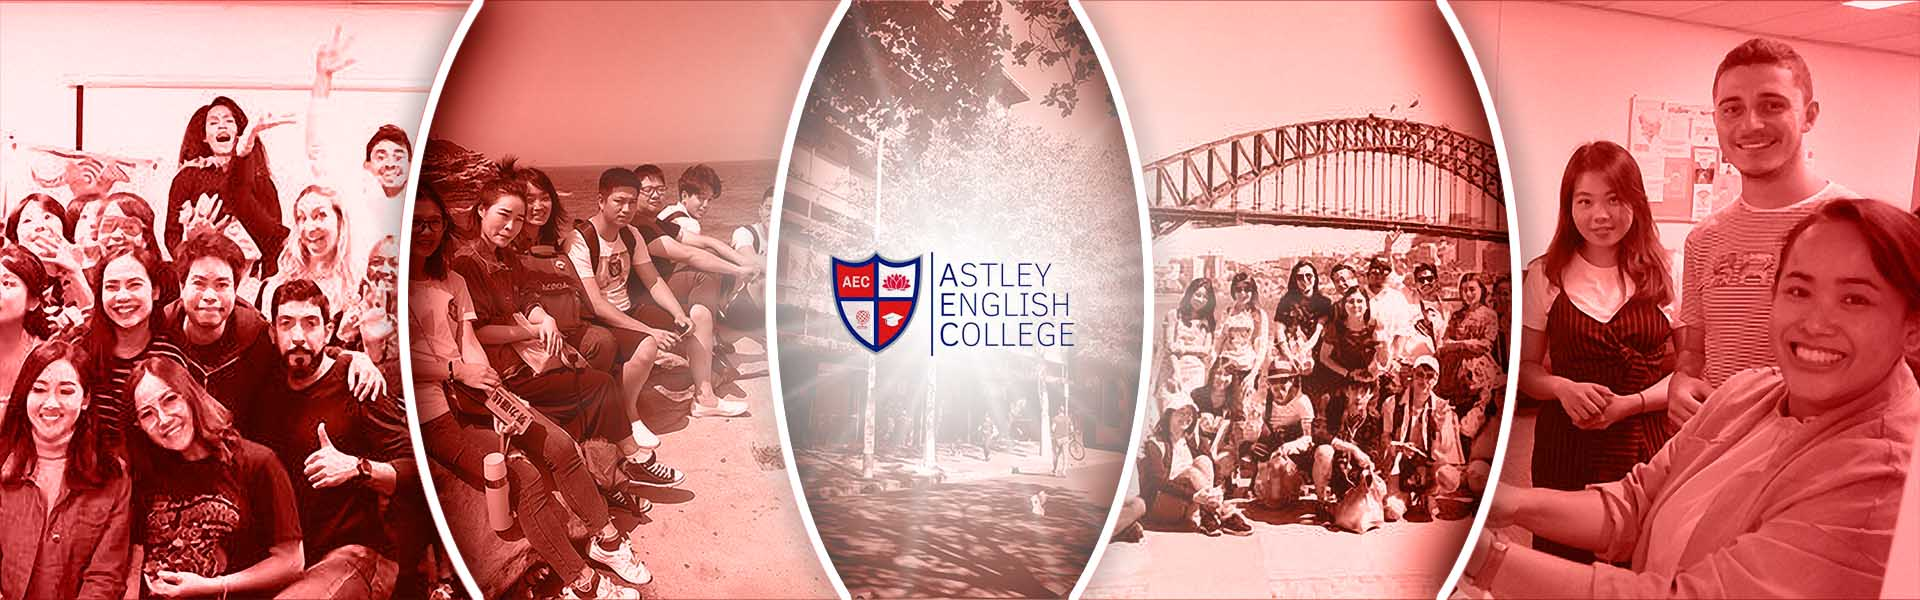 Astley English College Sydney Dil Okulu